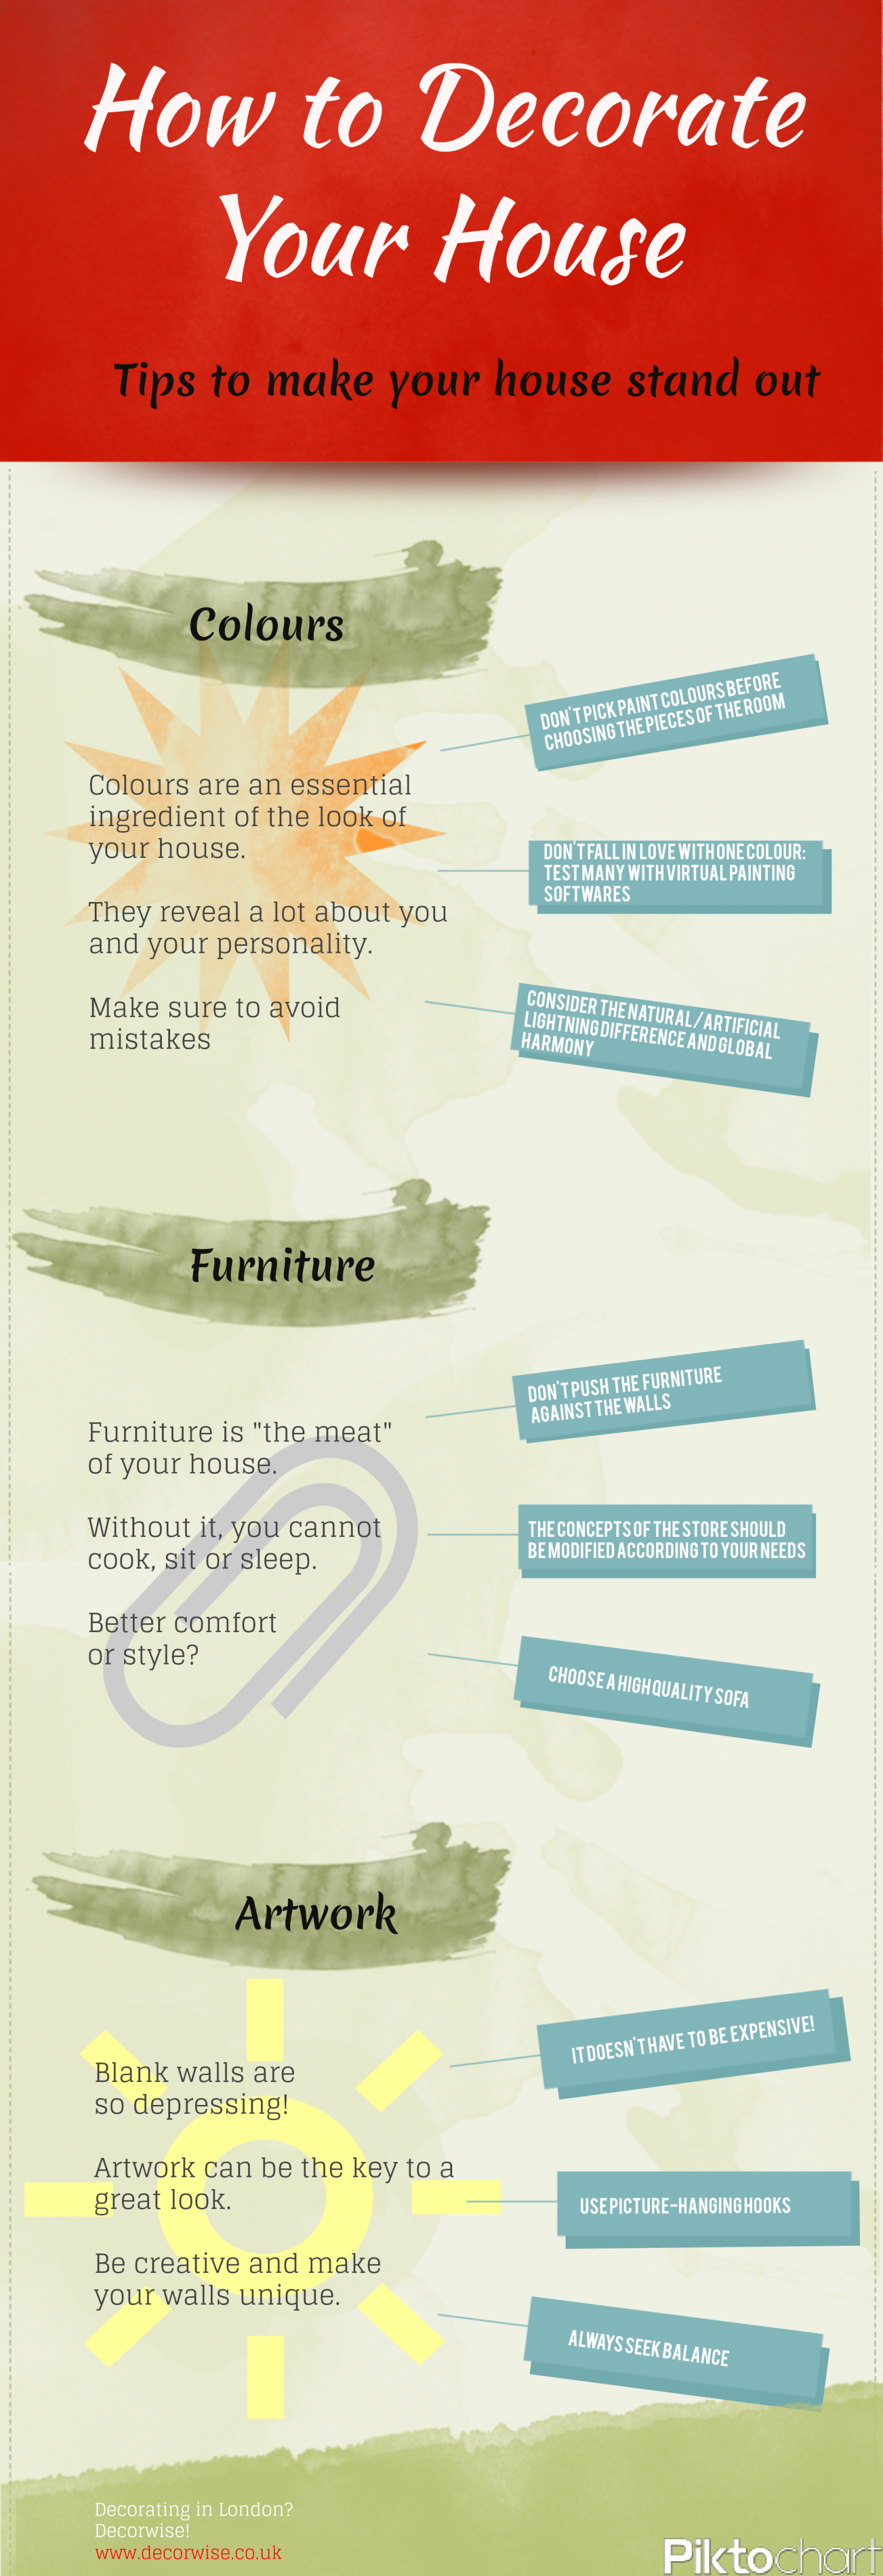 How to Decorate Your House Infographic